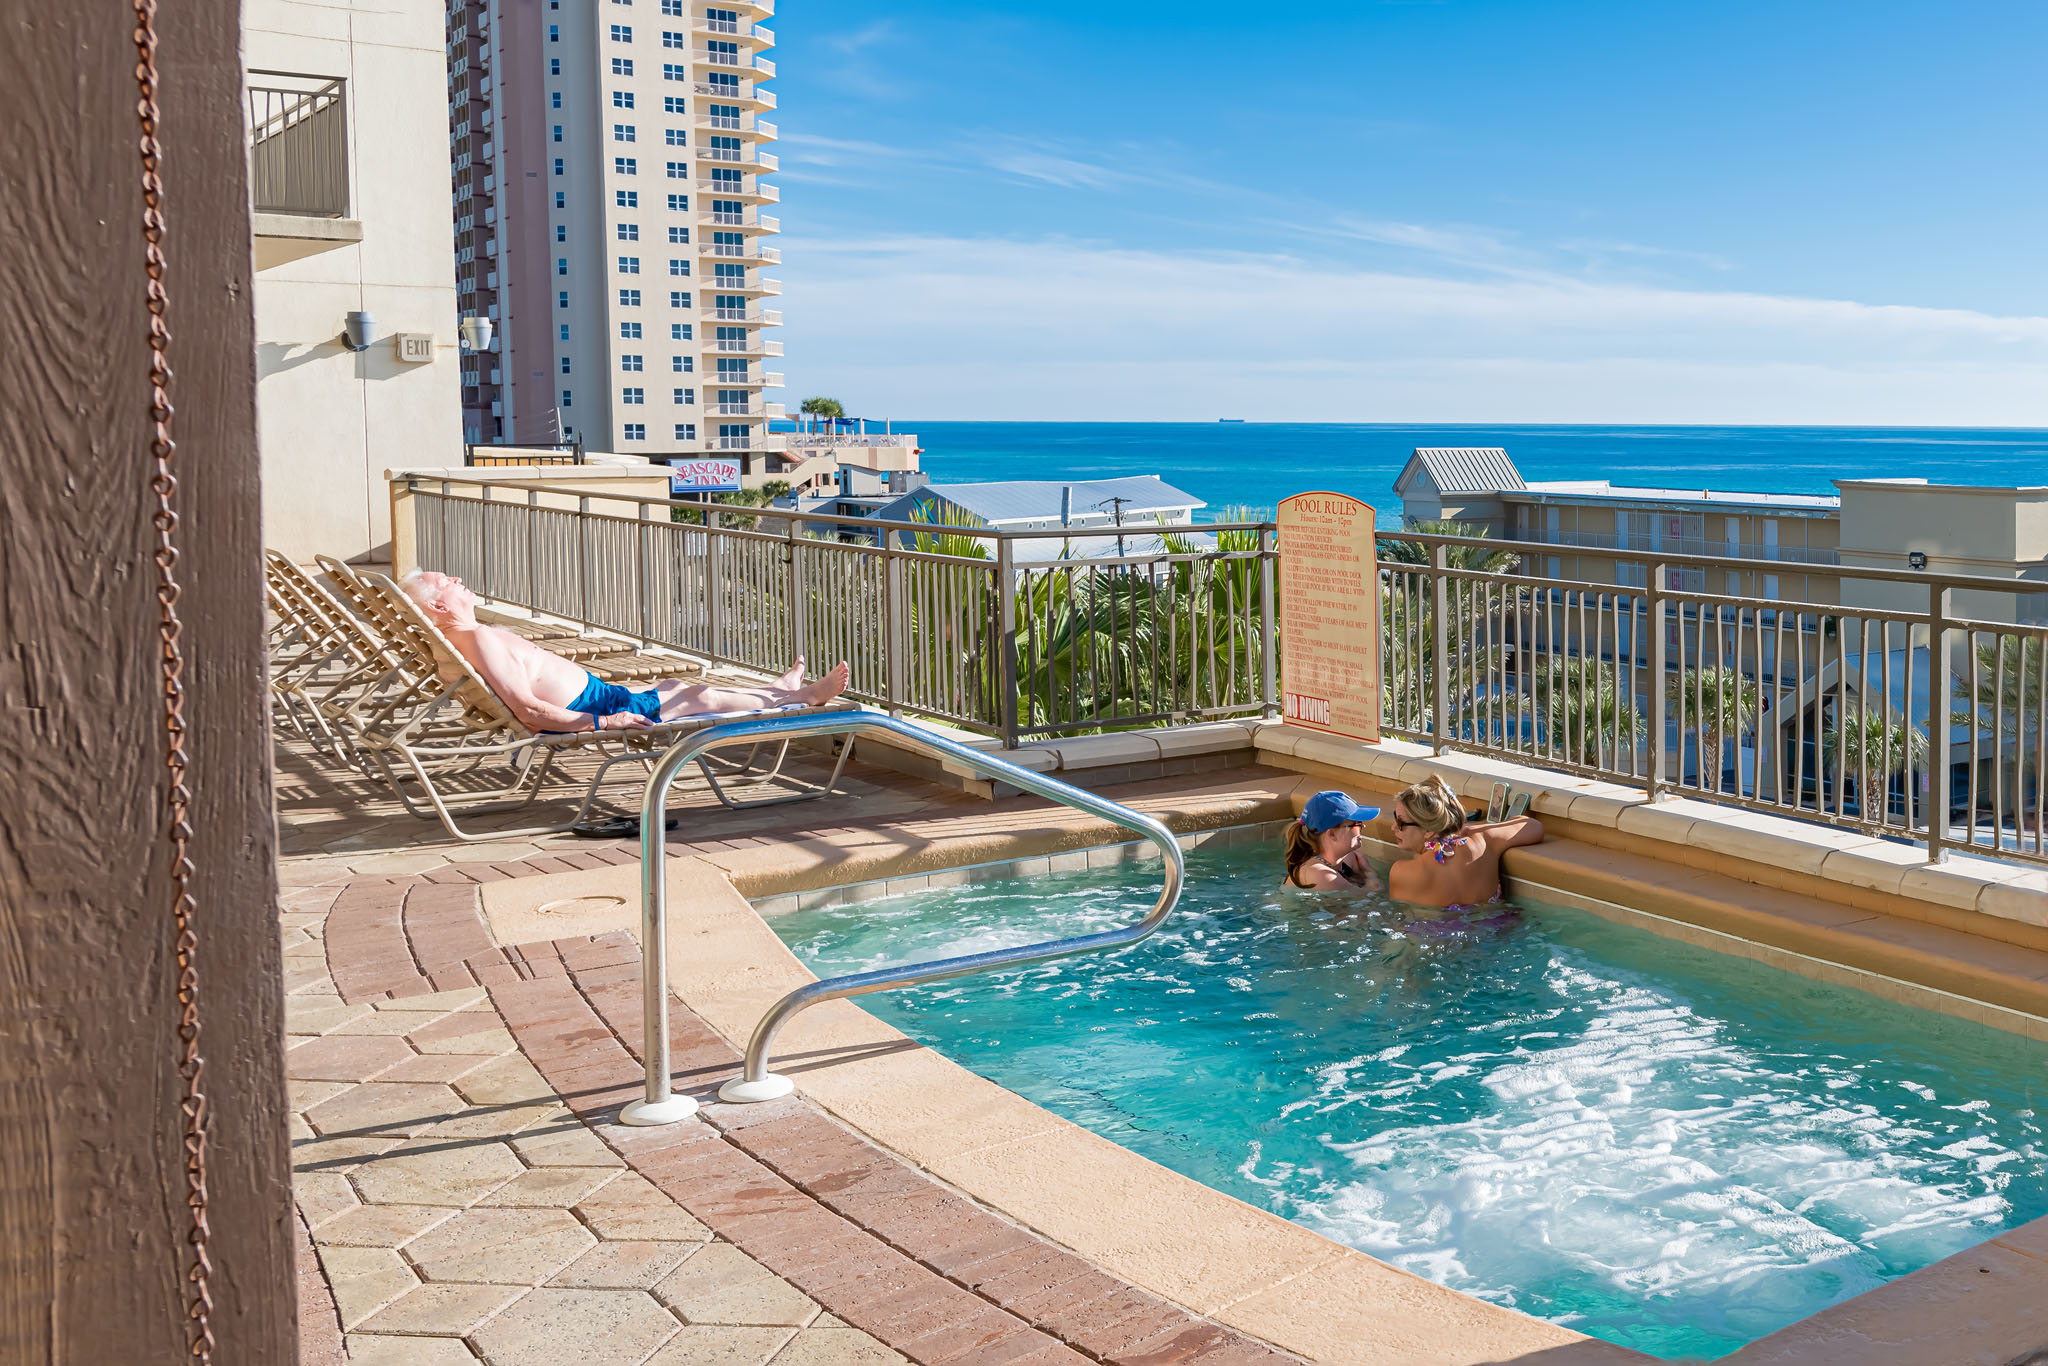 Fantastic Amenities - Explore Panama City Beach!